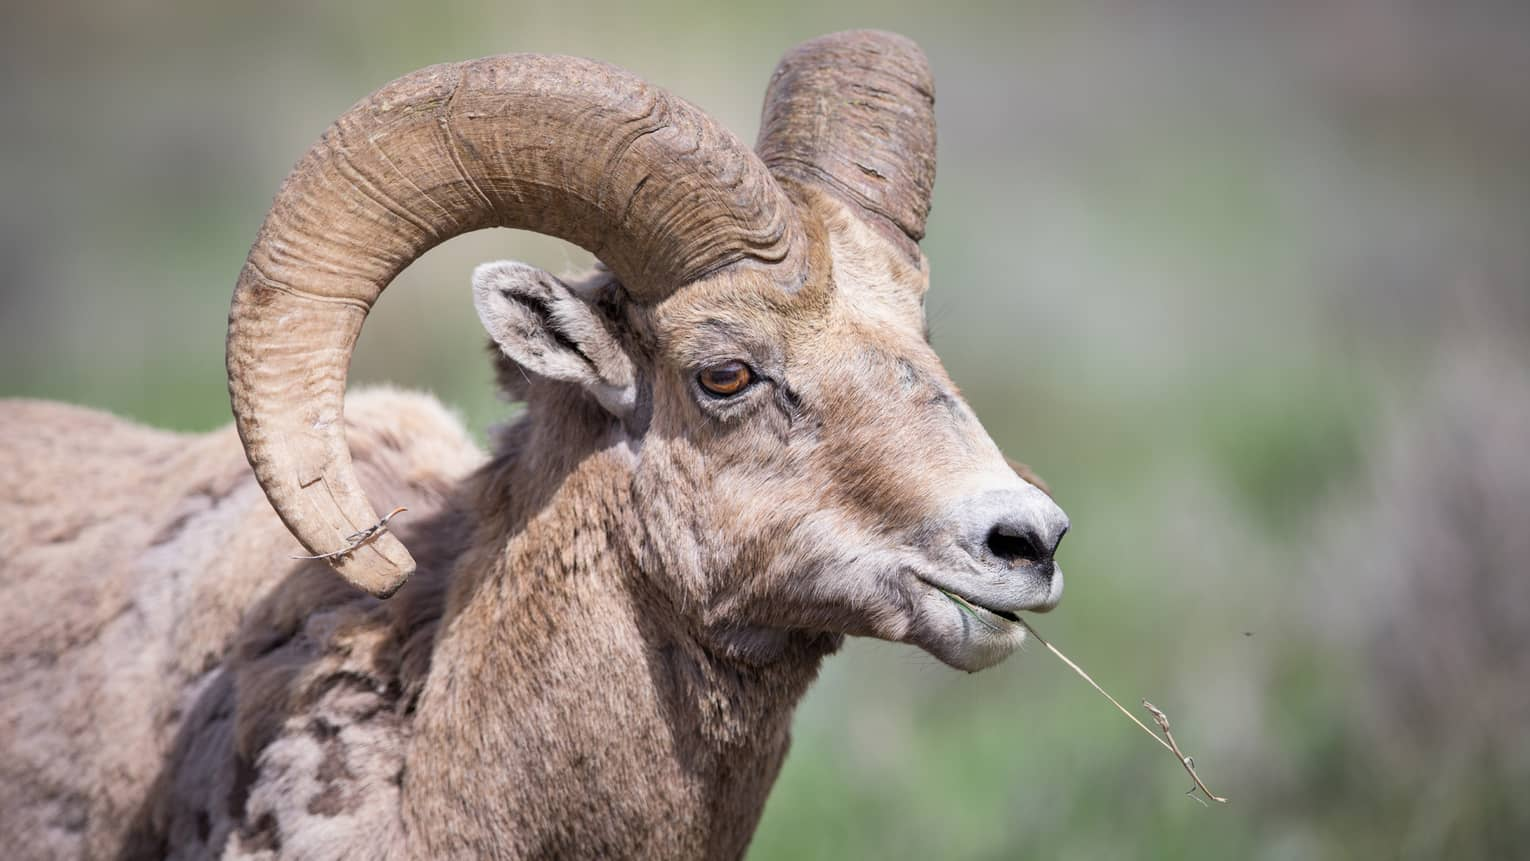 Close-up of mountain goat's head, large curved horns as it chews grass